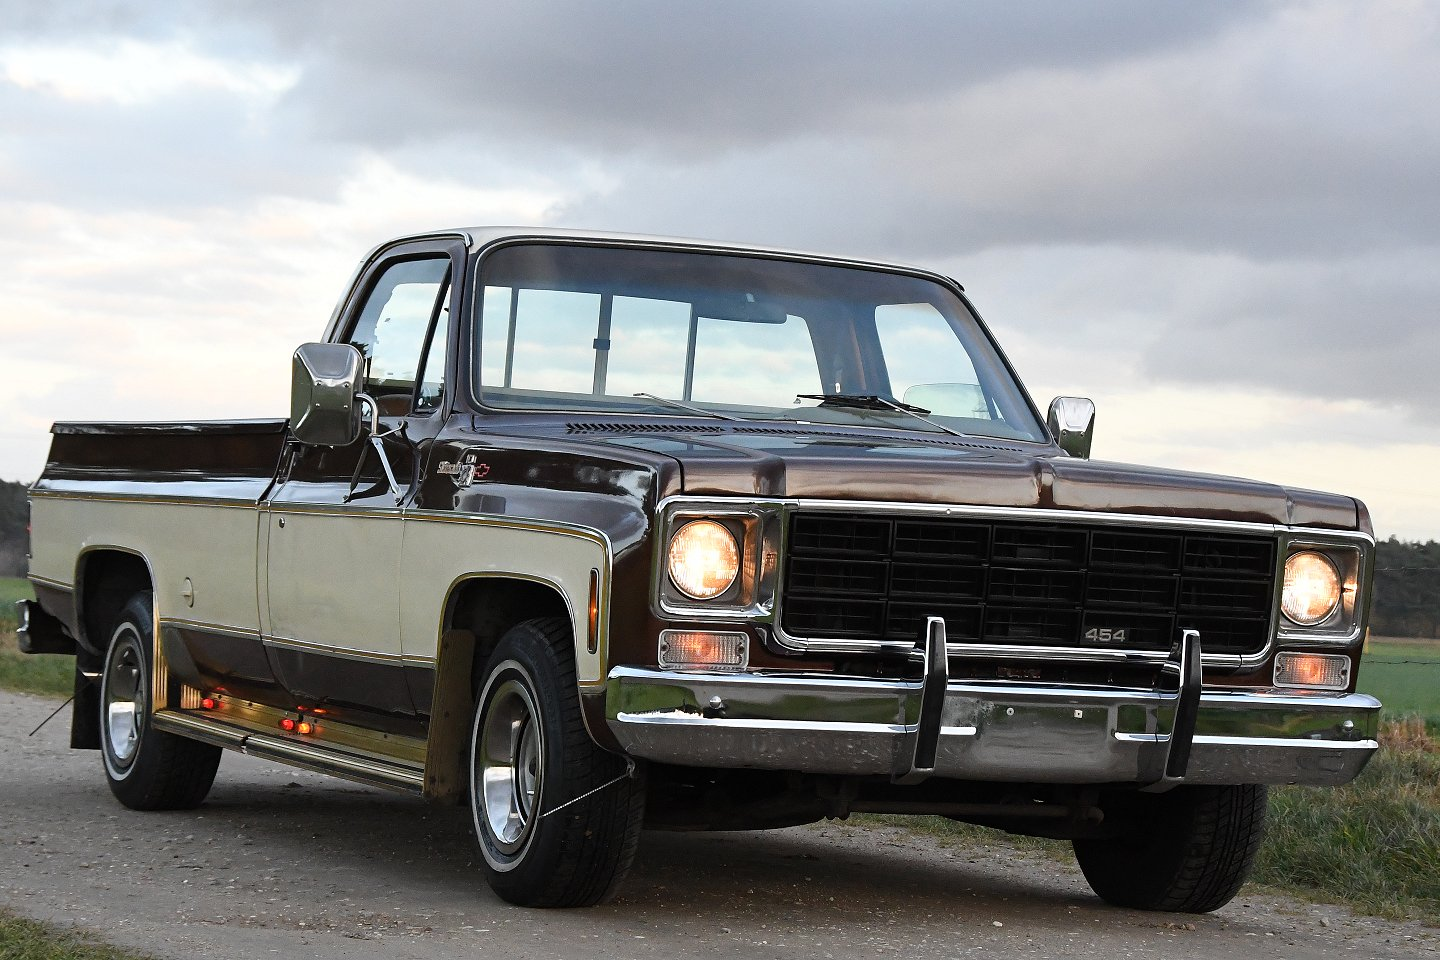 Chevrolet C10 Pick Up Silverado 1977 Stuurman Classic And Special Cars Ford O Matic Automatic Transmission Power Steering Brakes A It Comes With Bedcover In Color Airconditioning Tinted Windows